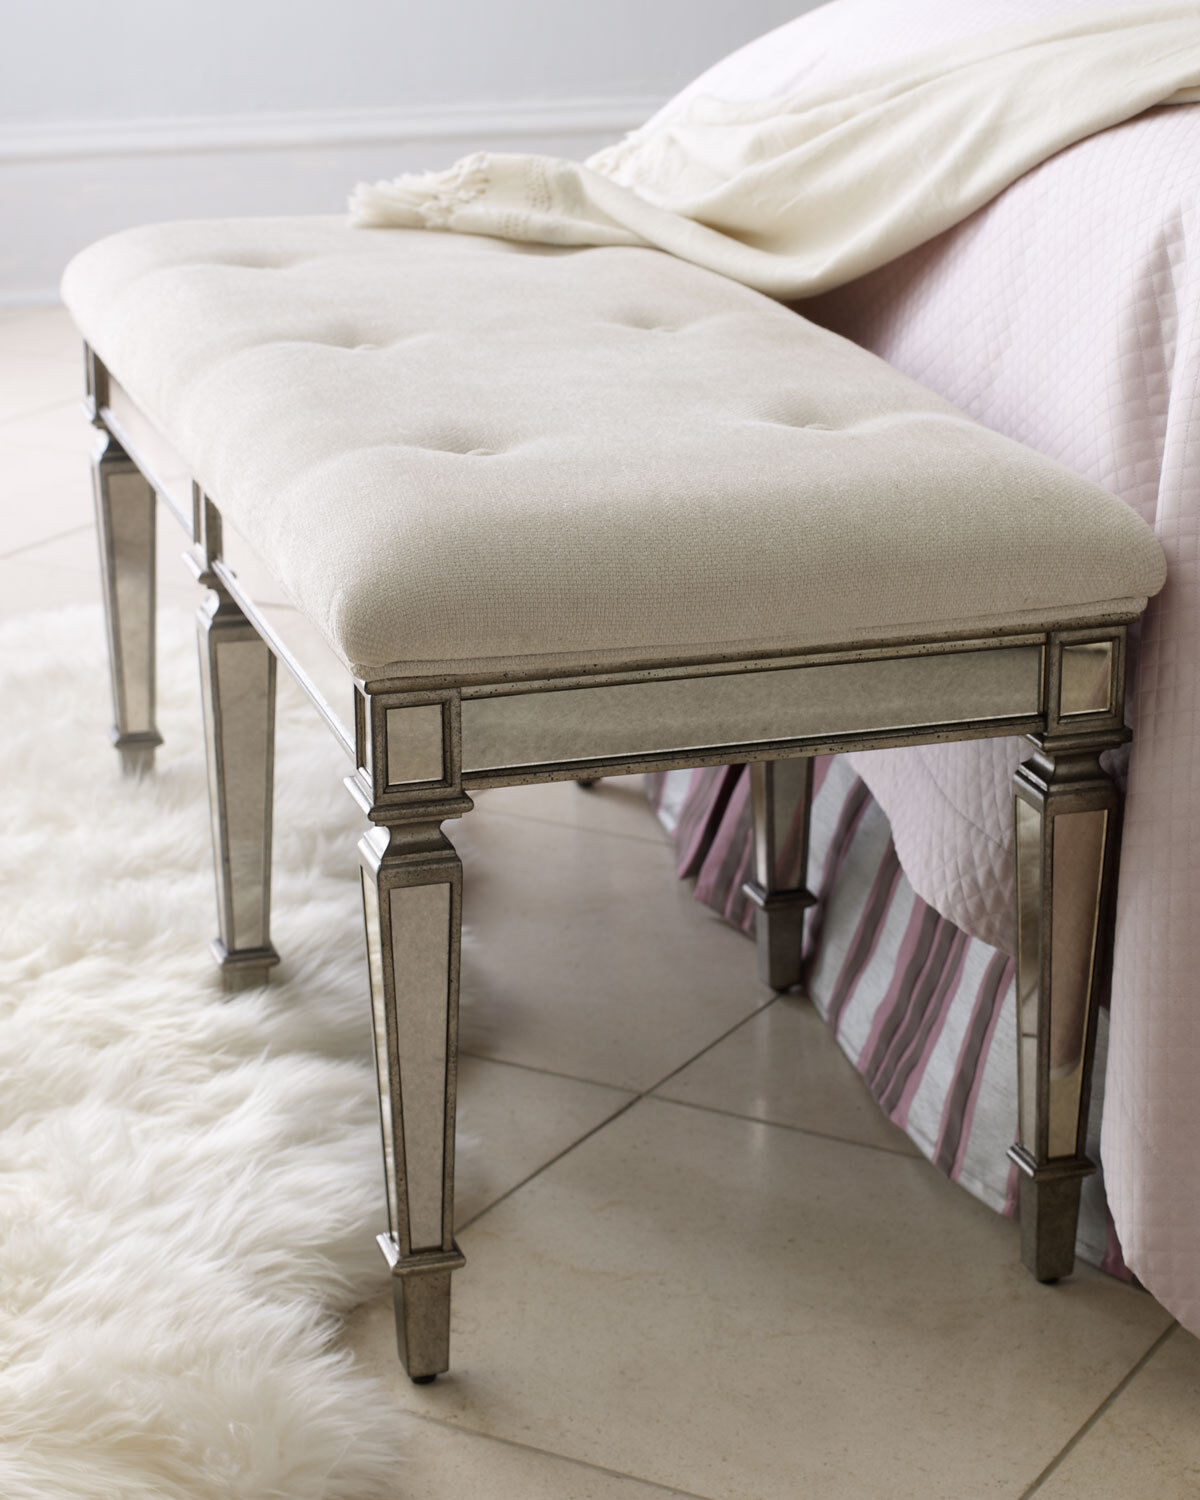 NEW Horchow Denison VANITY Stool BENCH Ottoman Bedroom Livin